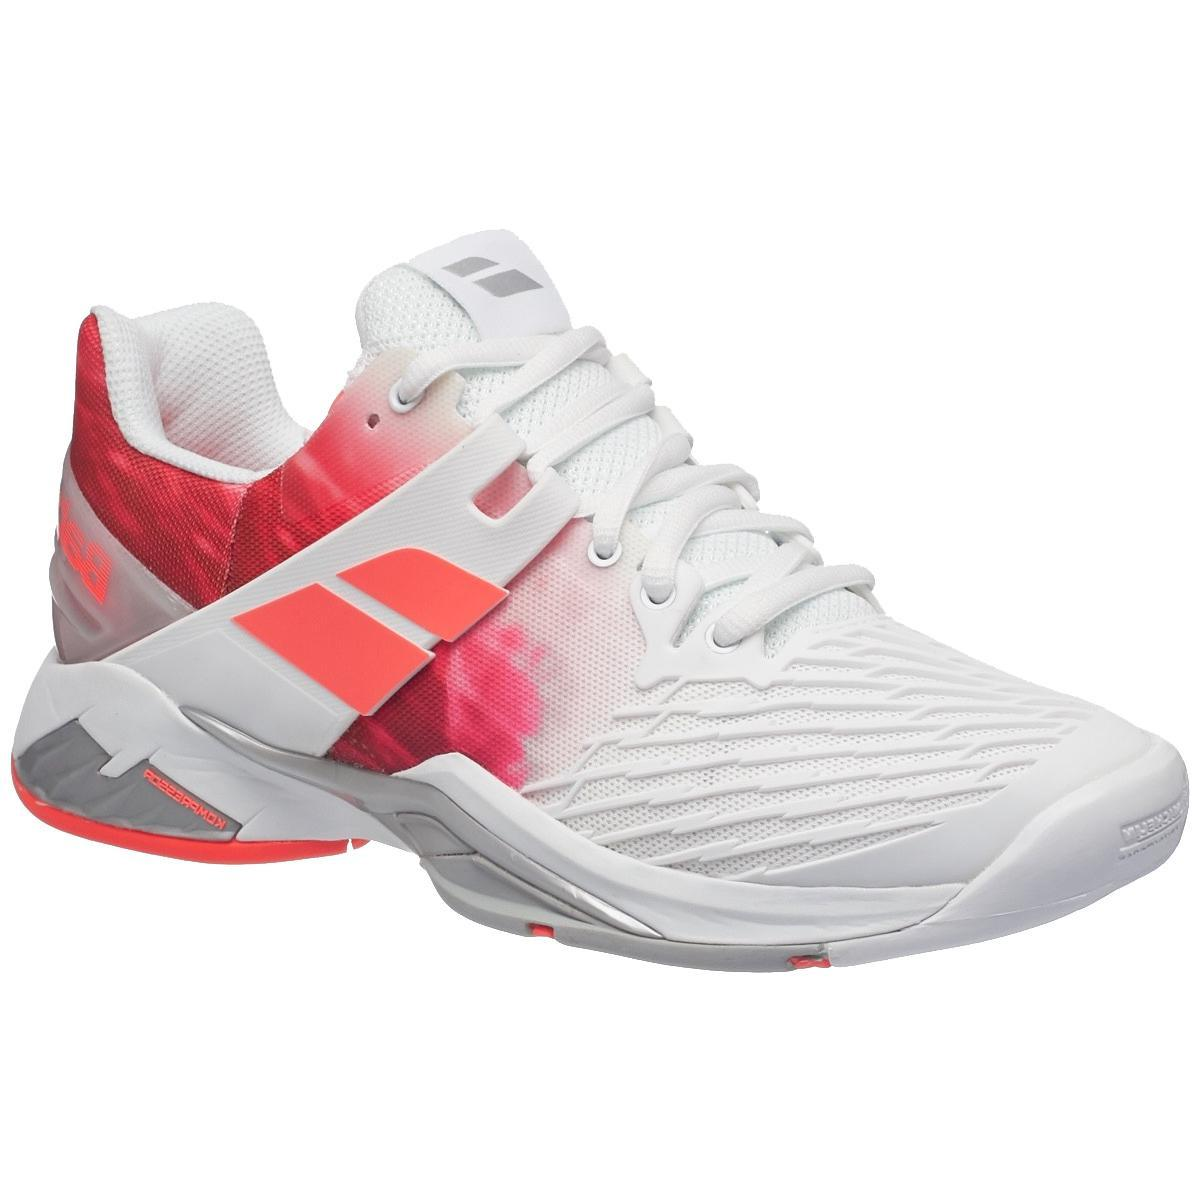 afbfd41af29 Babolat Womens Propulse Fury Tennis Shoes - White Pink - Tennisnuts.com